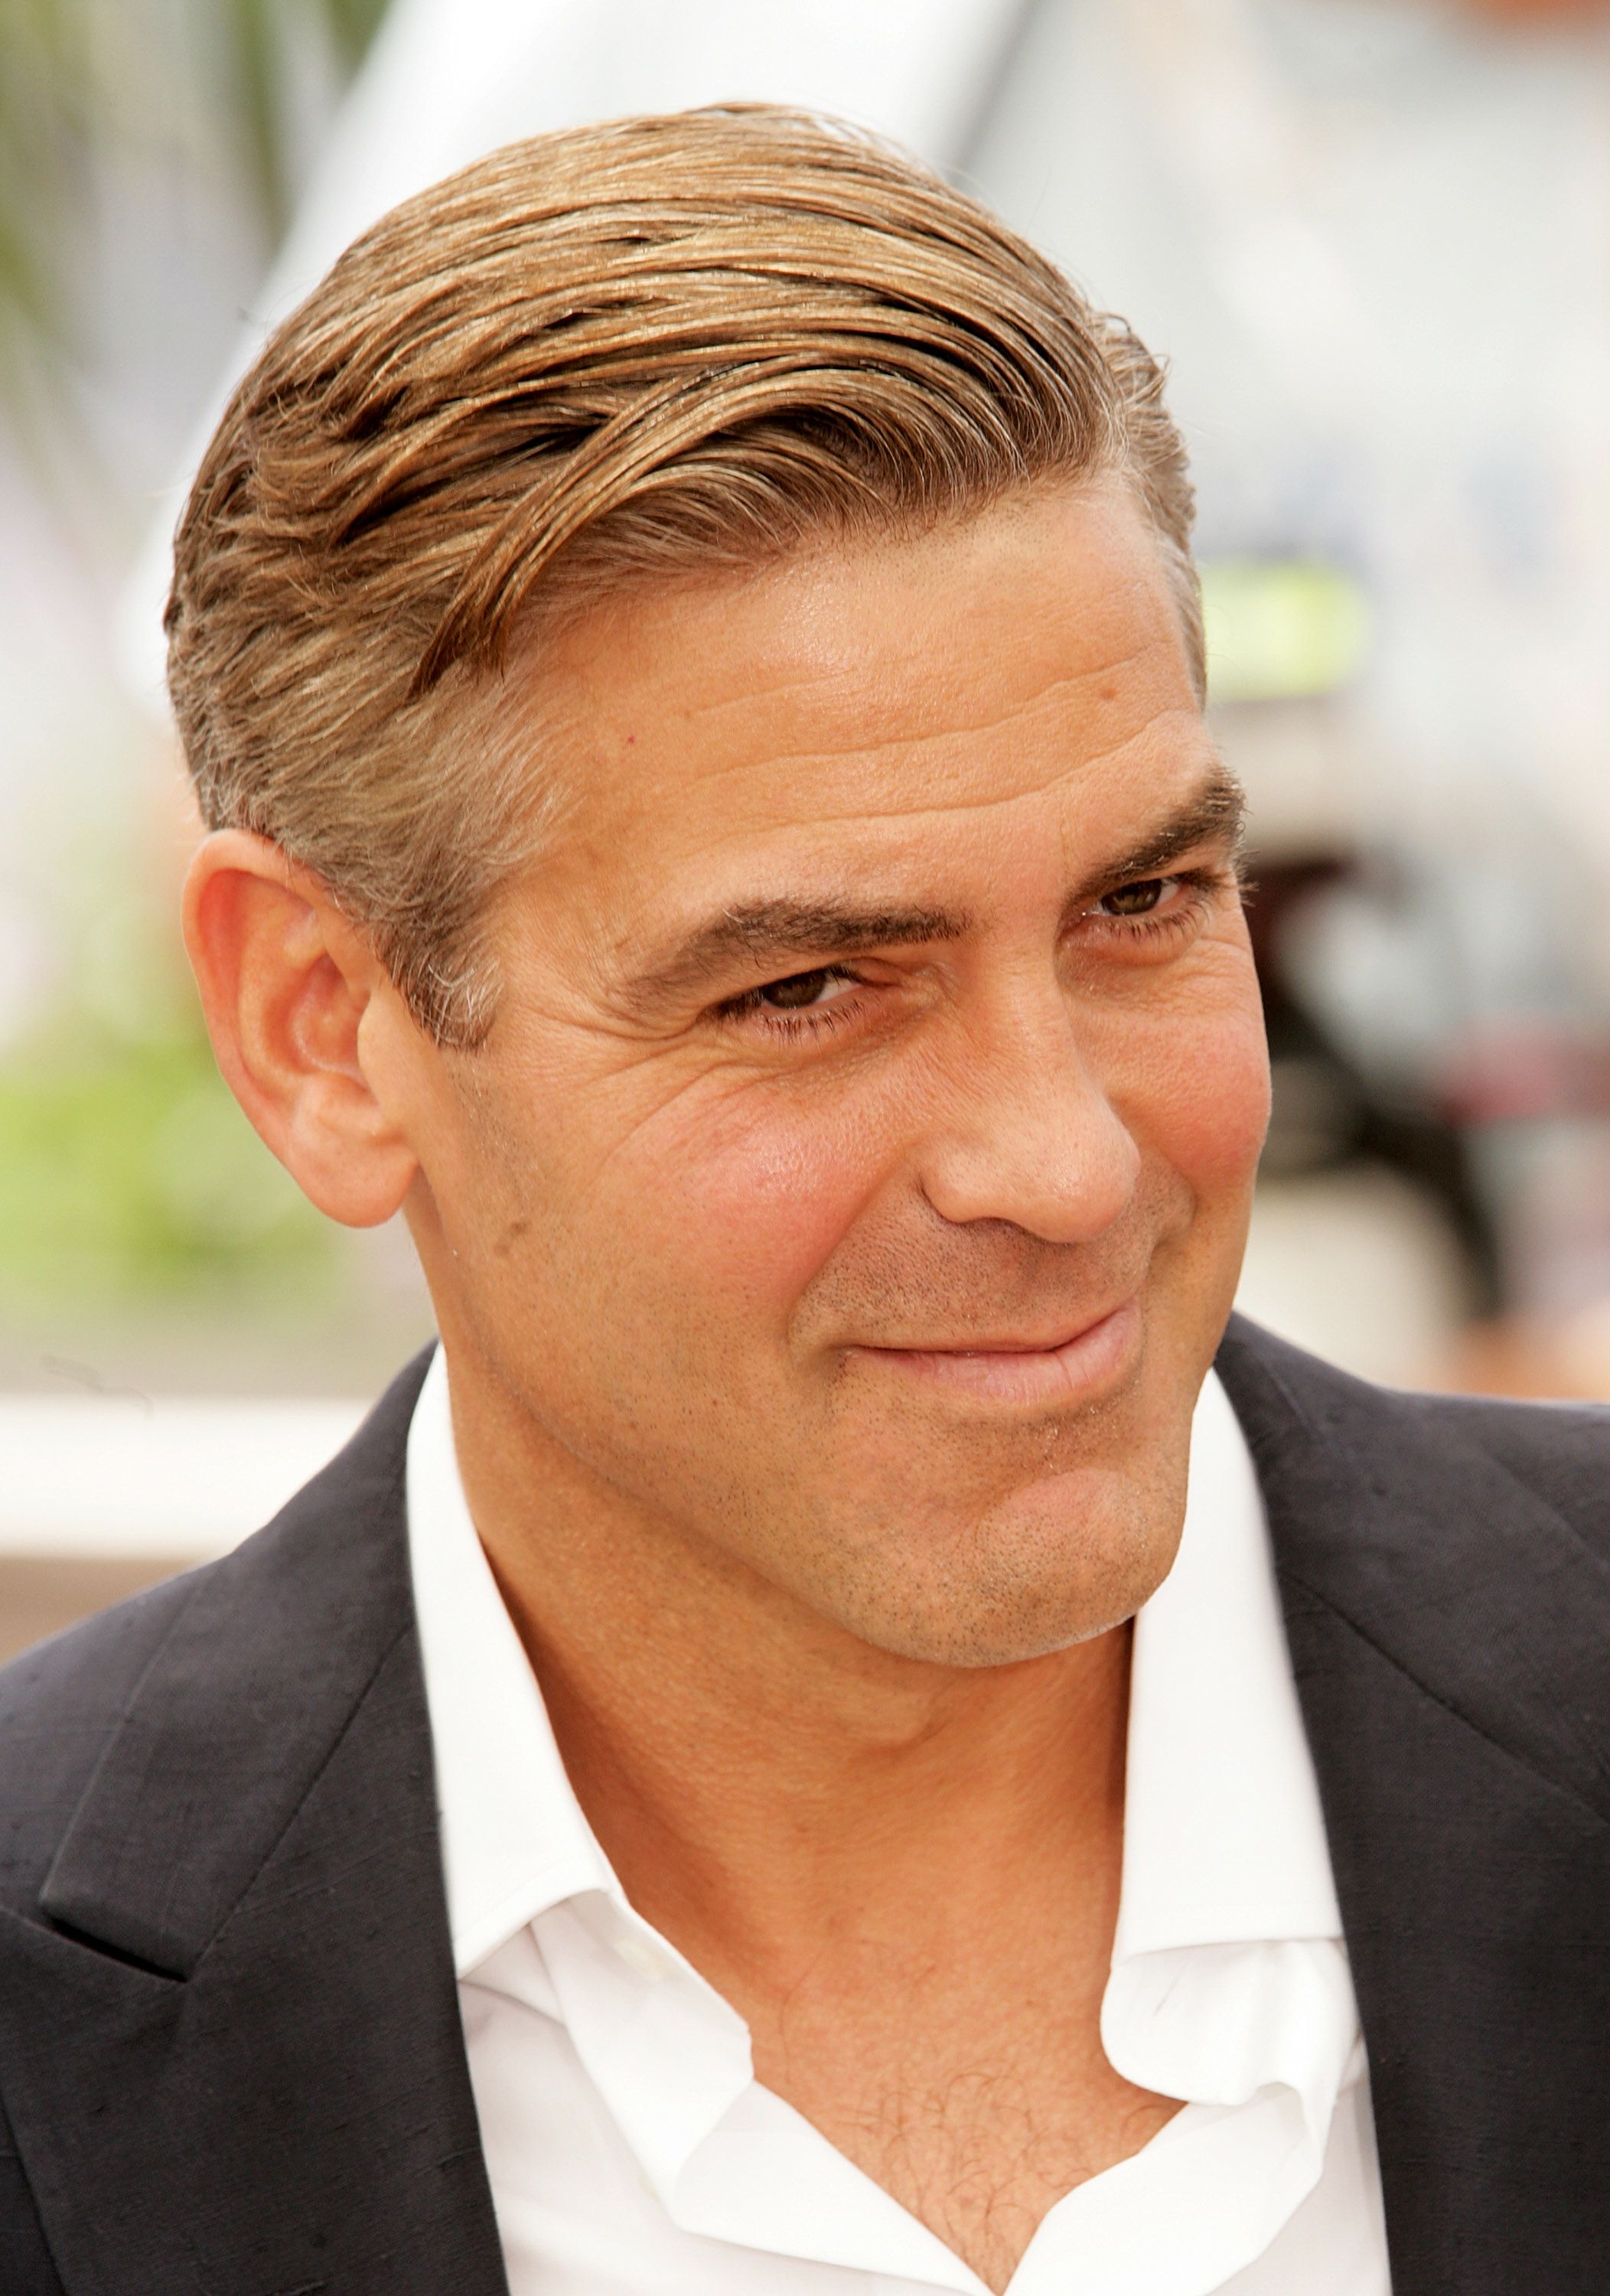 Ahhh The George Clooney Haircut. Thereu0027s Nothing Like Looking Like The Man  Women Love And Men Want To Be. Throughout The Years George Clooney Haircuts  Have